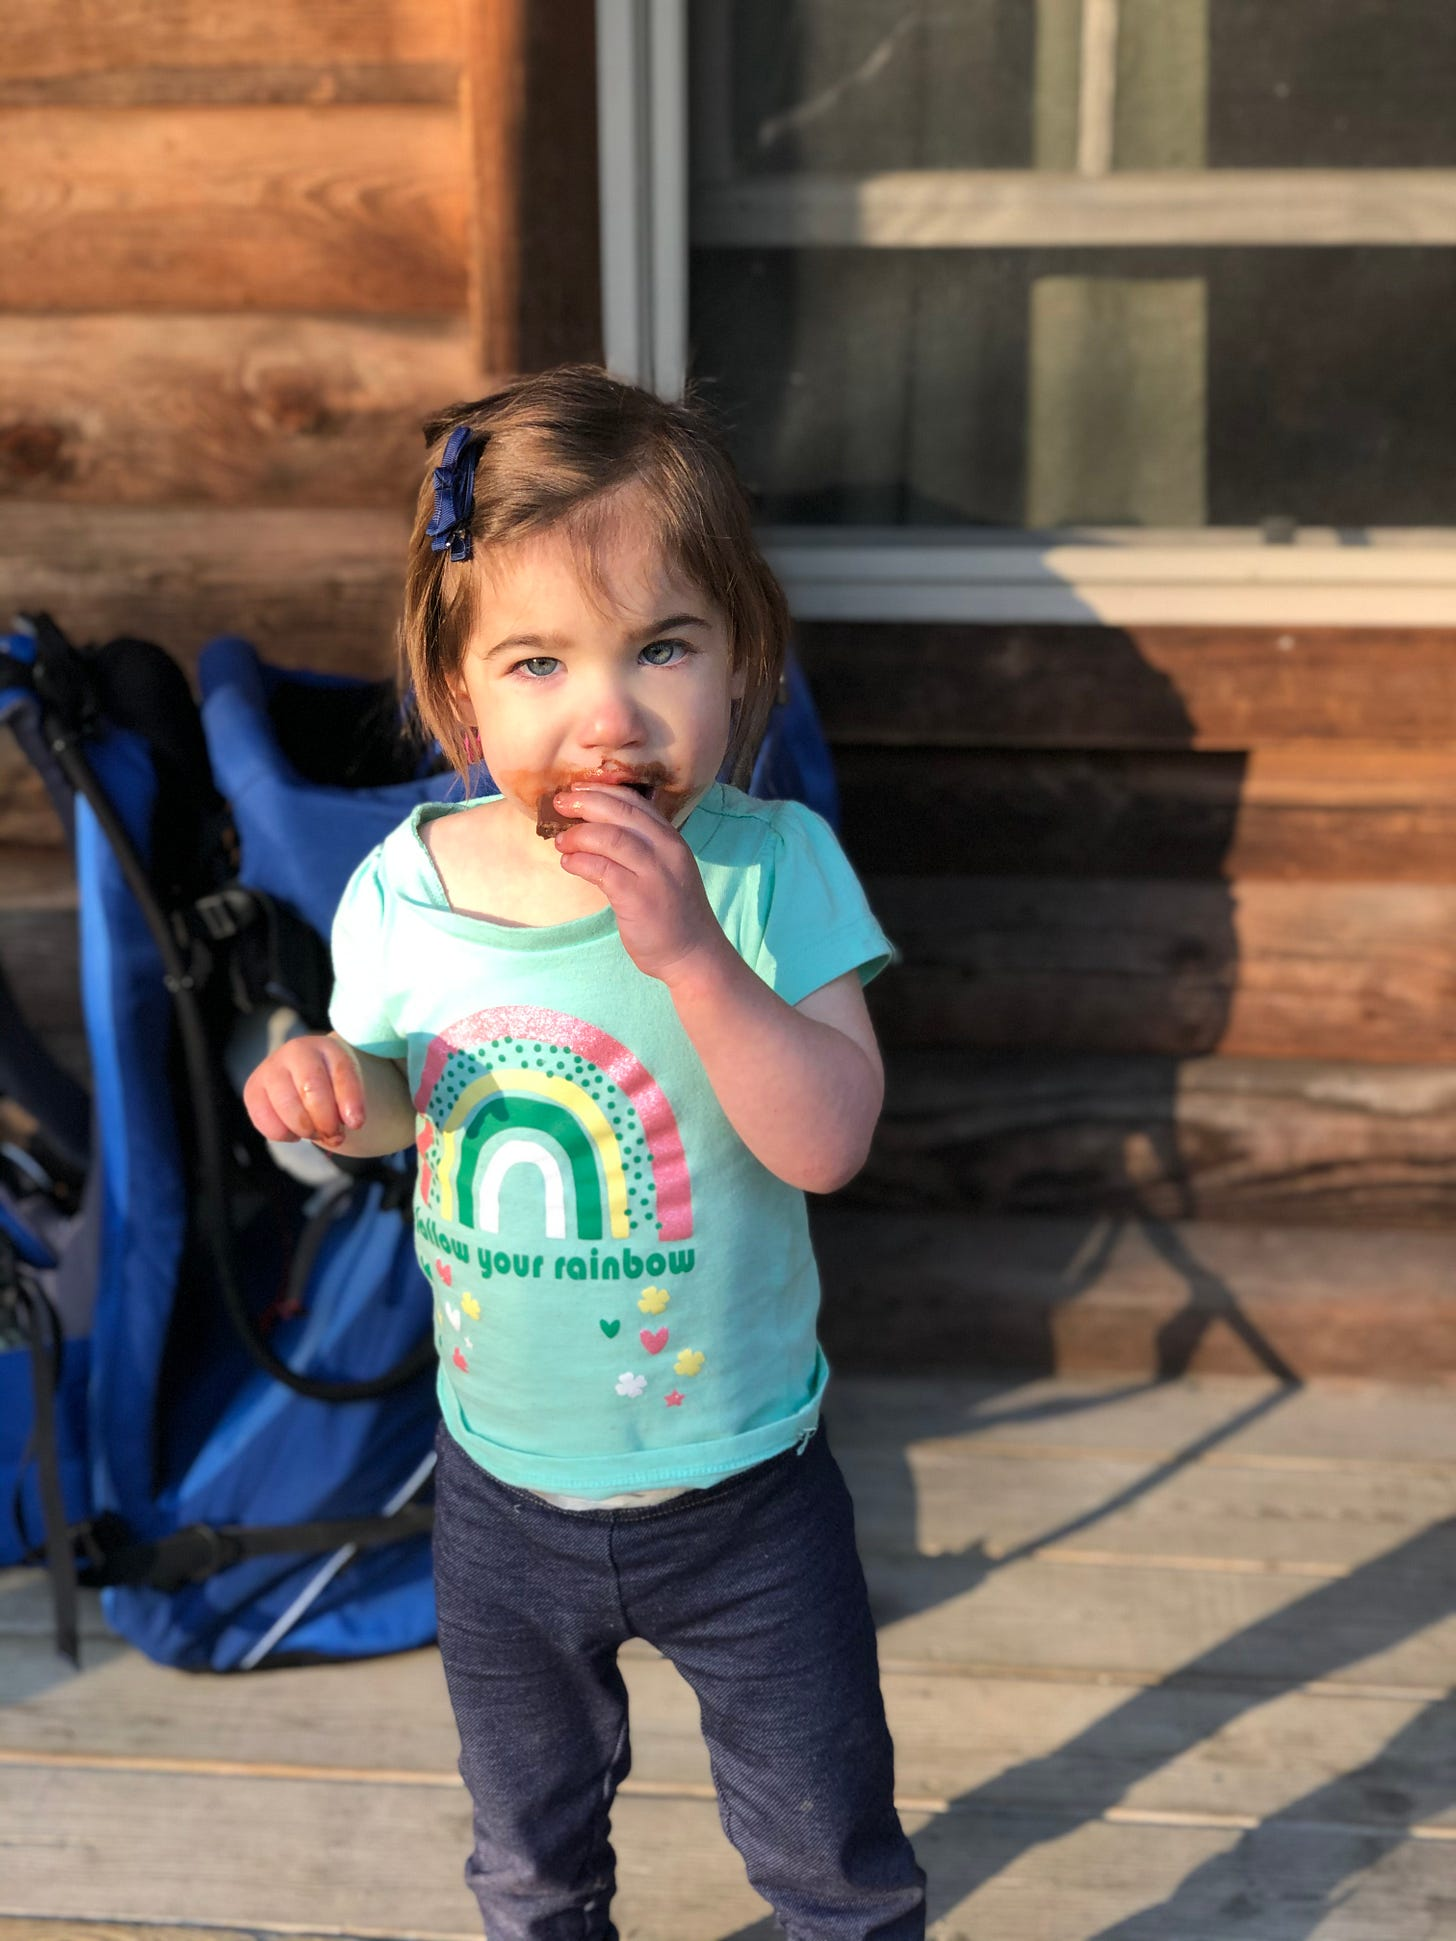 Photograph of Lila eating a chocolate bar with her face covered in chocolate.